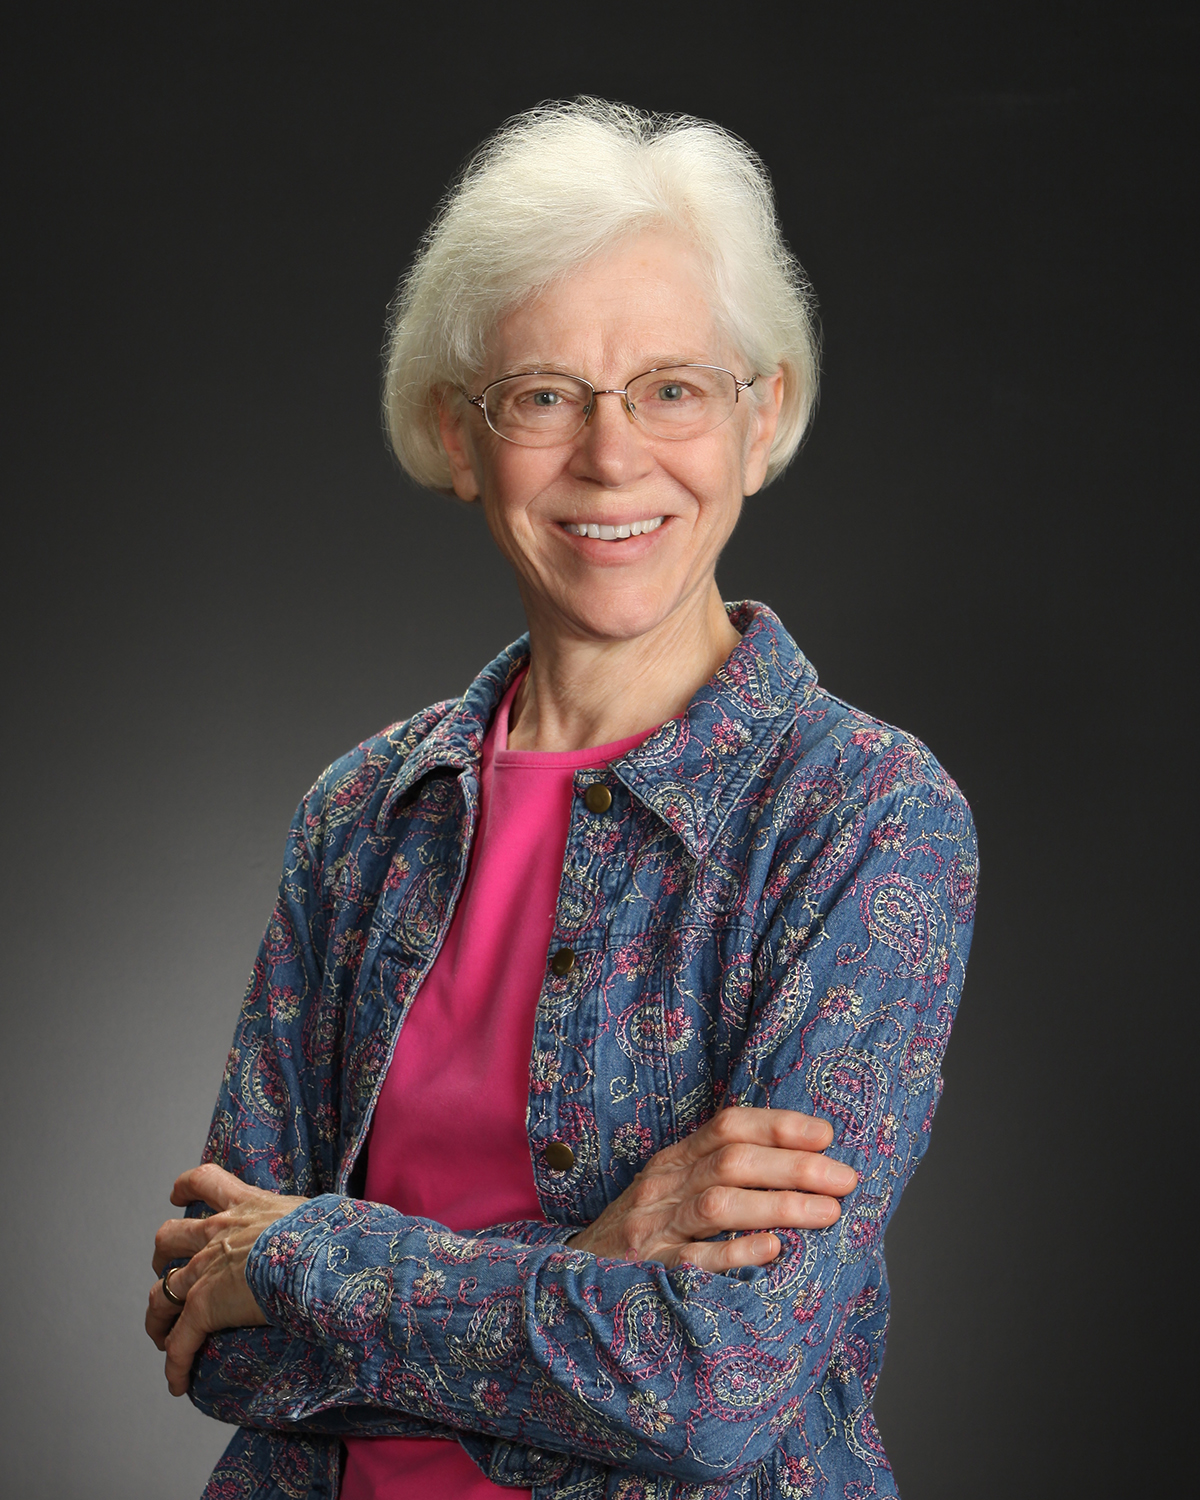 Writer and historian Peggy Reiff Miller